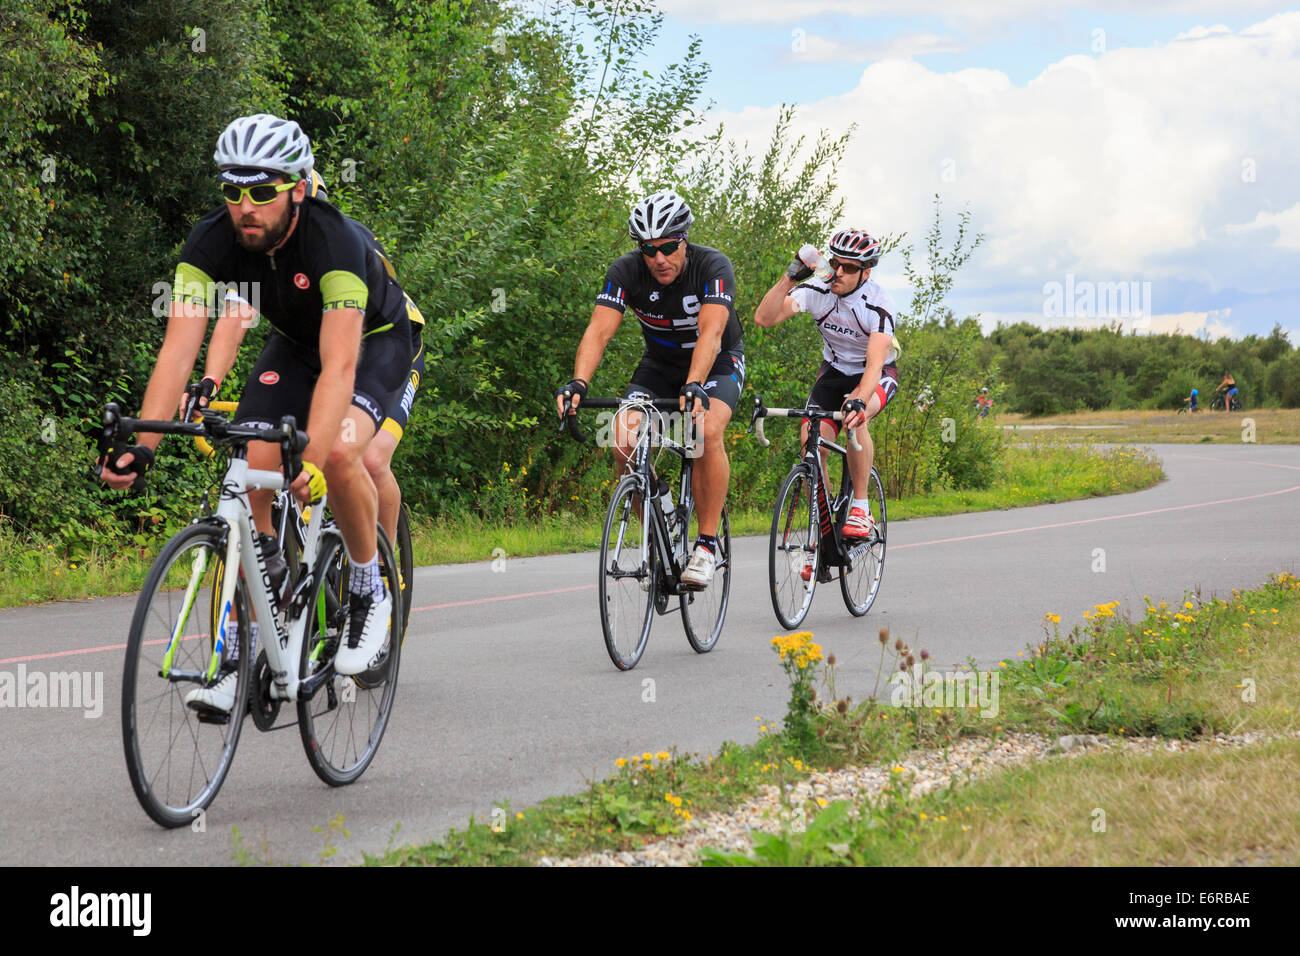 Cyclist drinking water whilst racing in a local bike race organised by British Cycling at Fowlmead Country Park - Stock Image